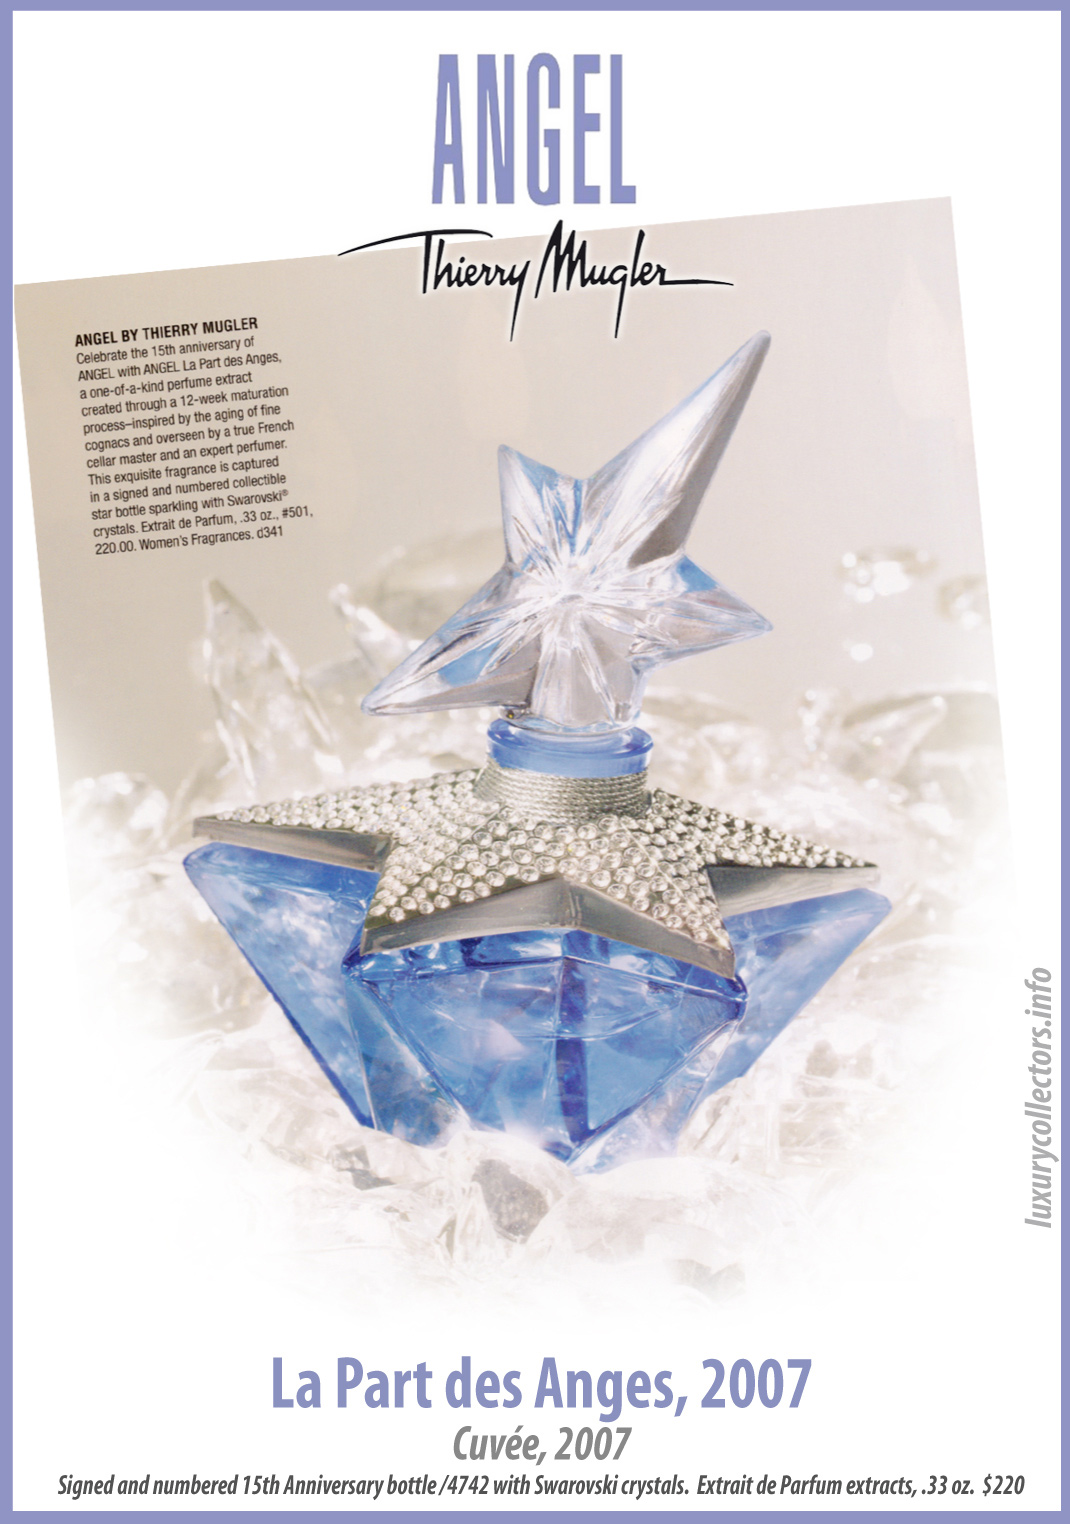 Thierry Mugler Angel Perfume La PArt des anges Angels (Etoile), 2007. Perfume Bottle Collecting 15th anniversary